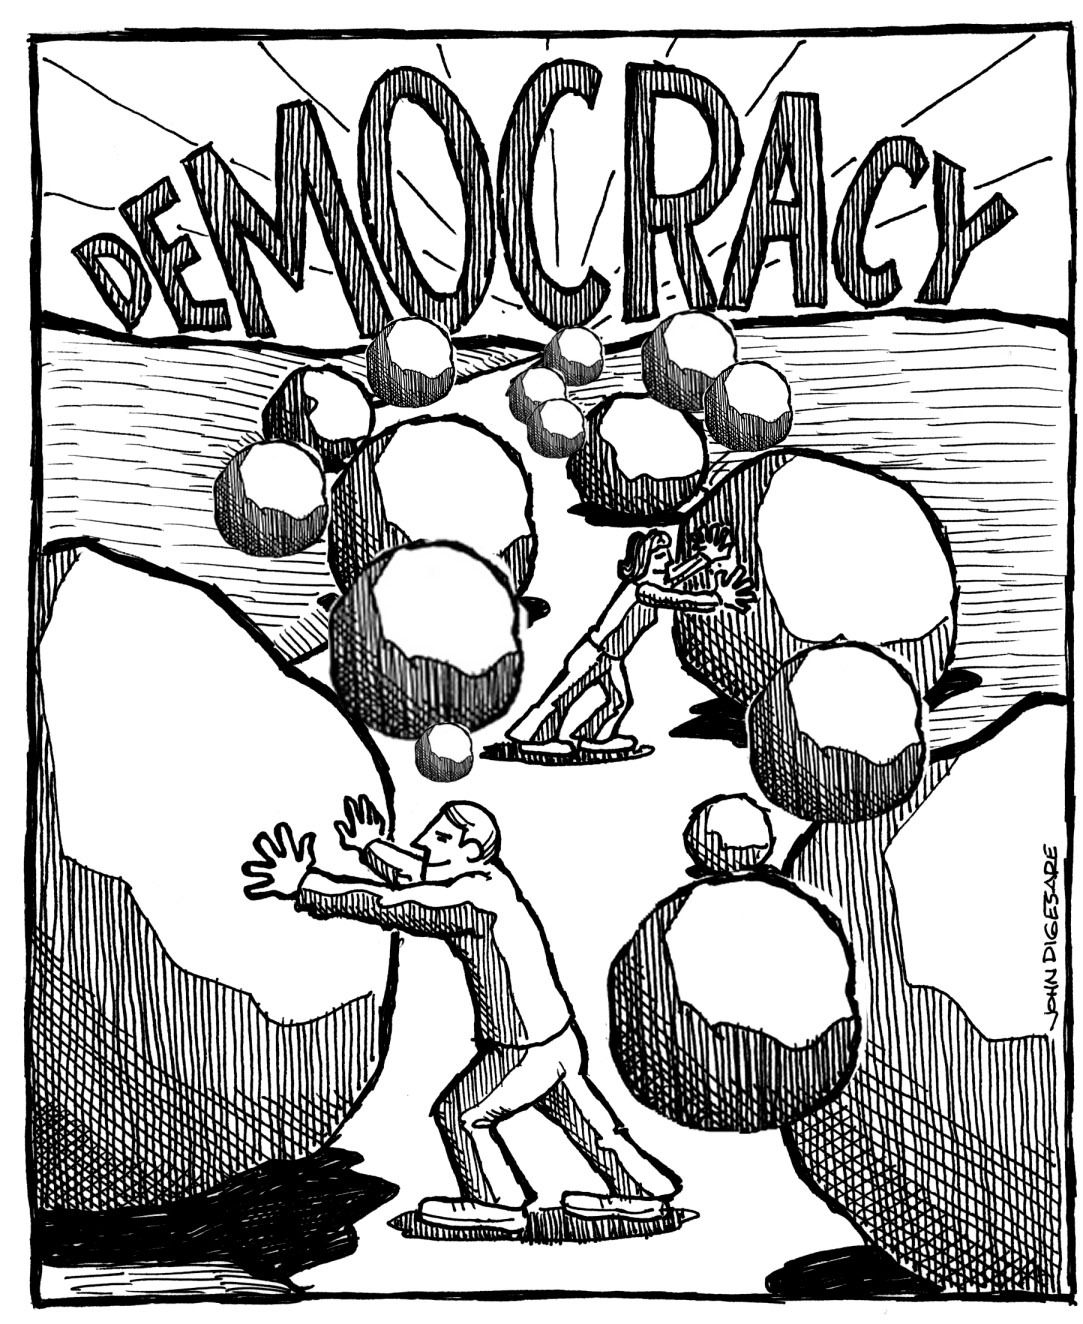 Democracy-A Compromise Story